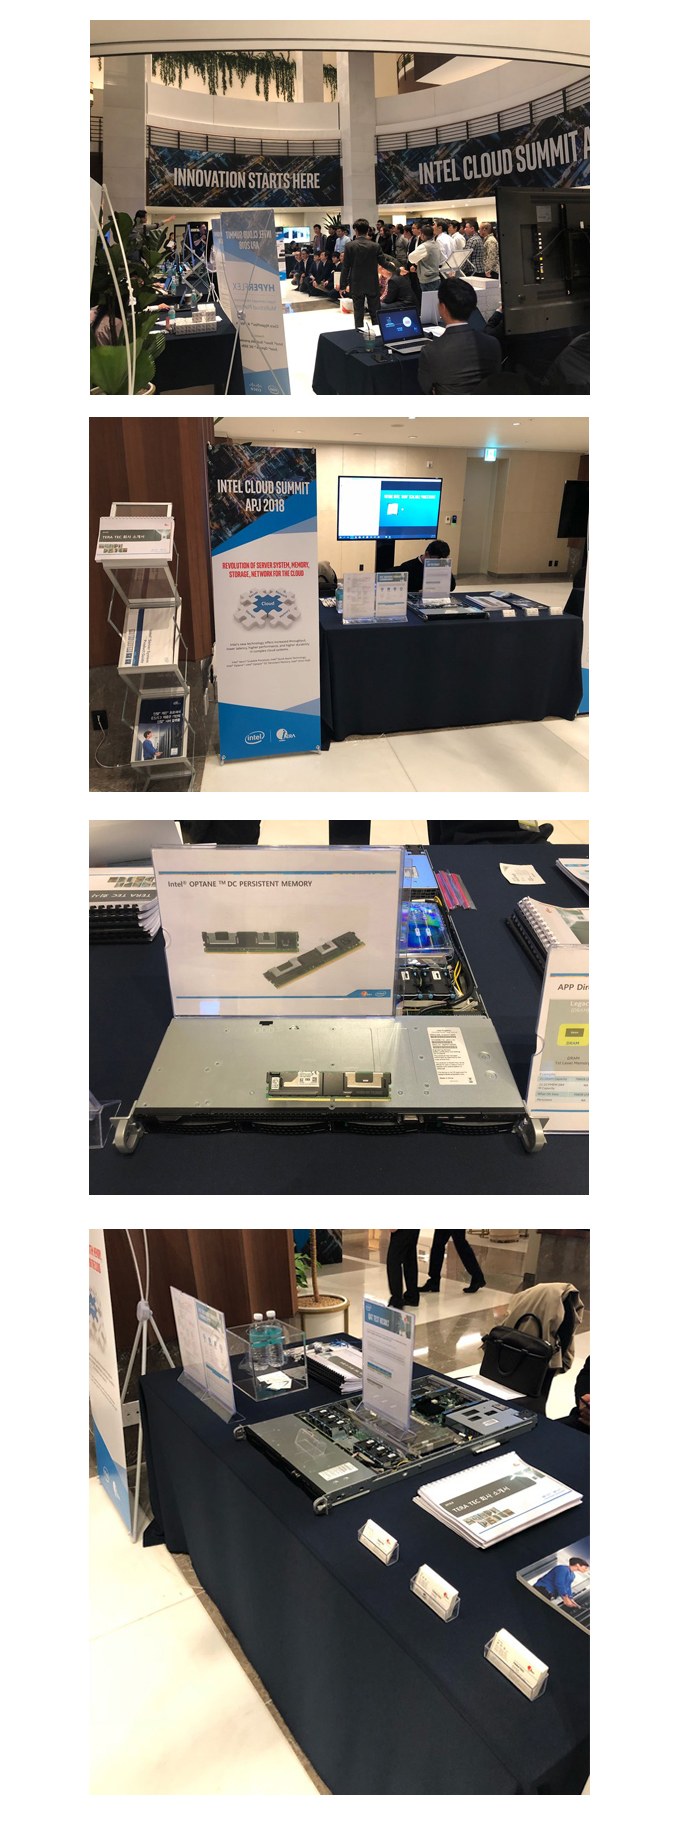 teratec-cloud summit 2018-02.JPG